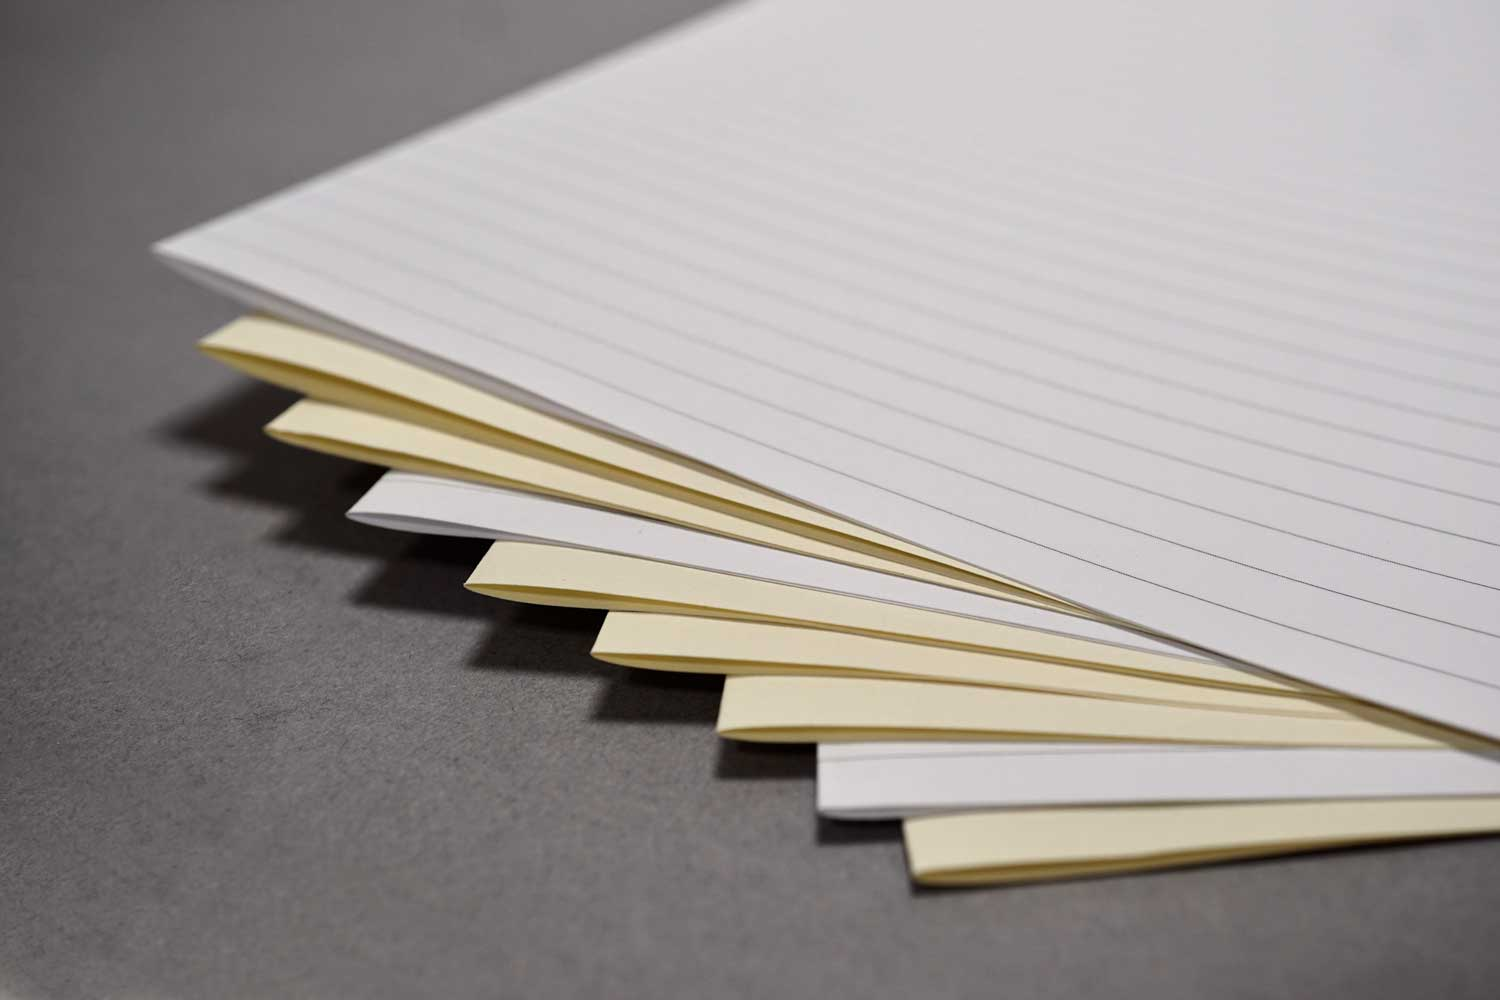 Bookbinding paper from Bookshell bindery, cream with lined pages and short grain